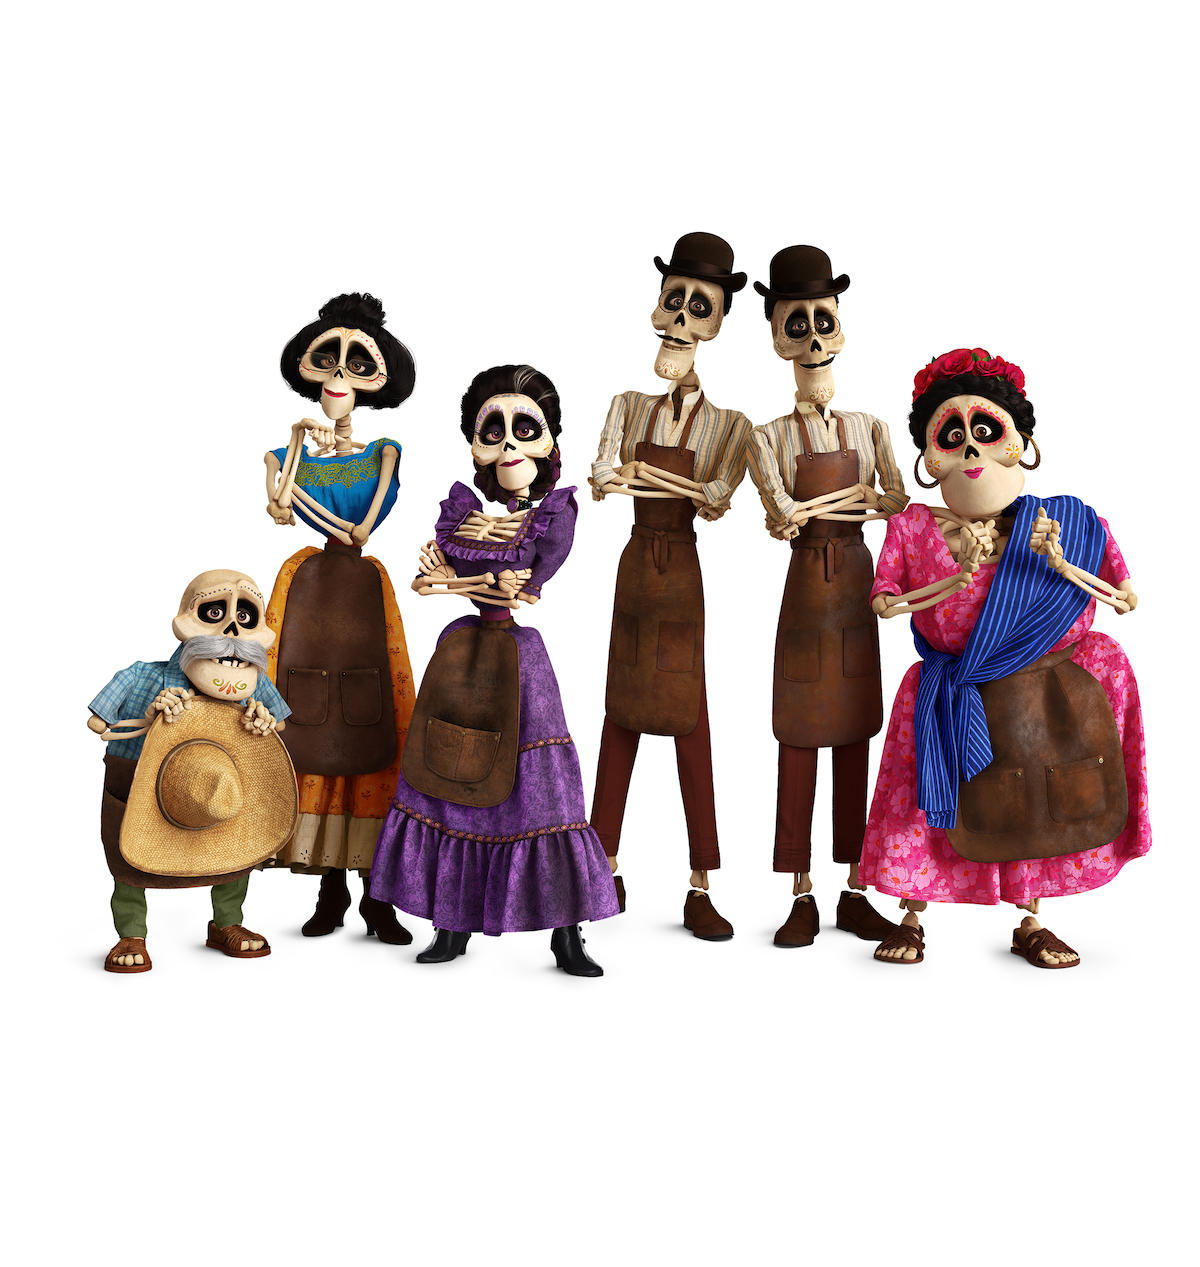 How a Mexican Folk Artist's Fever Dream Inspired a Character in Pixar's 'Coco'